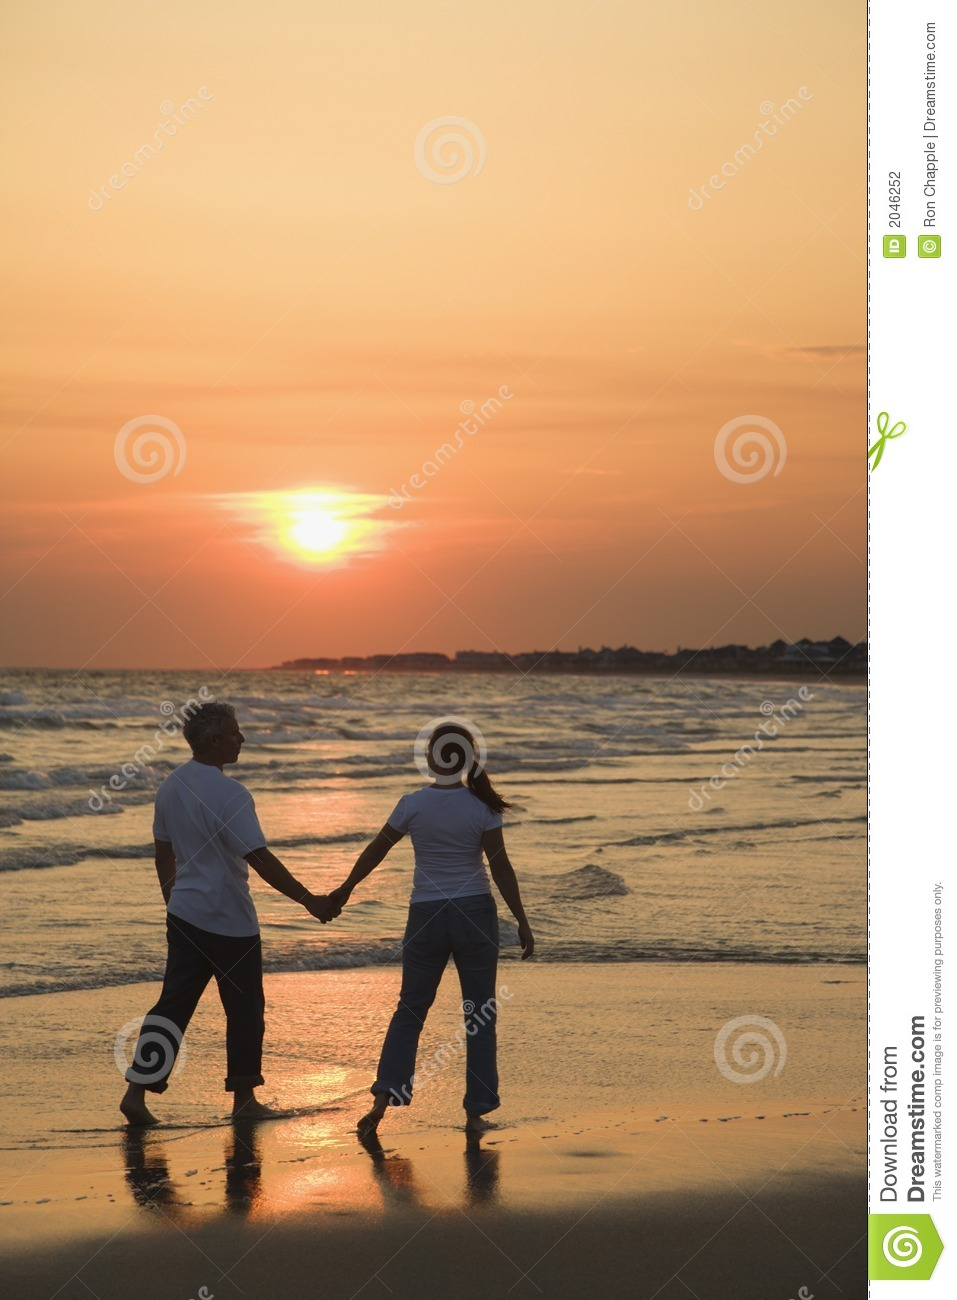 Couple on beach at sunsest.